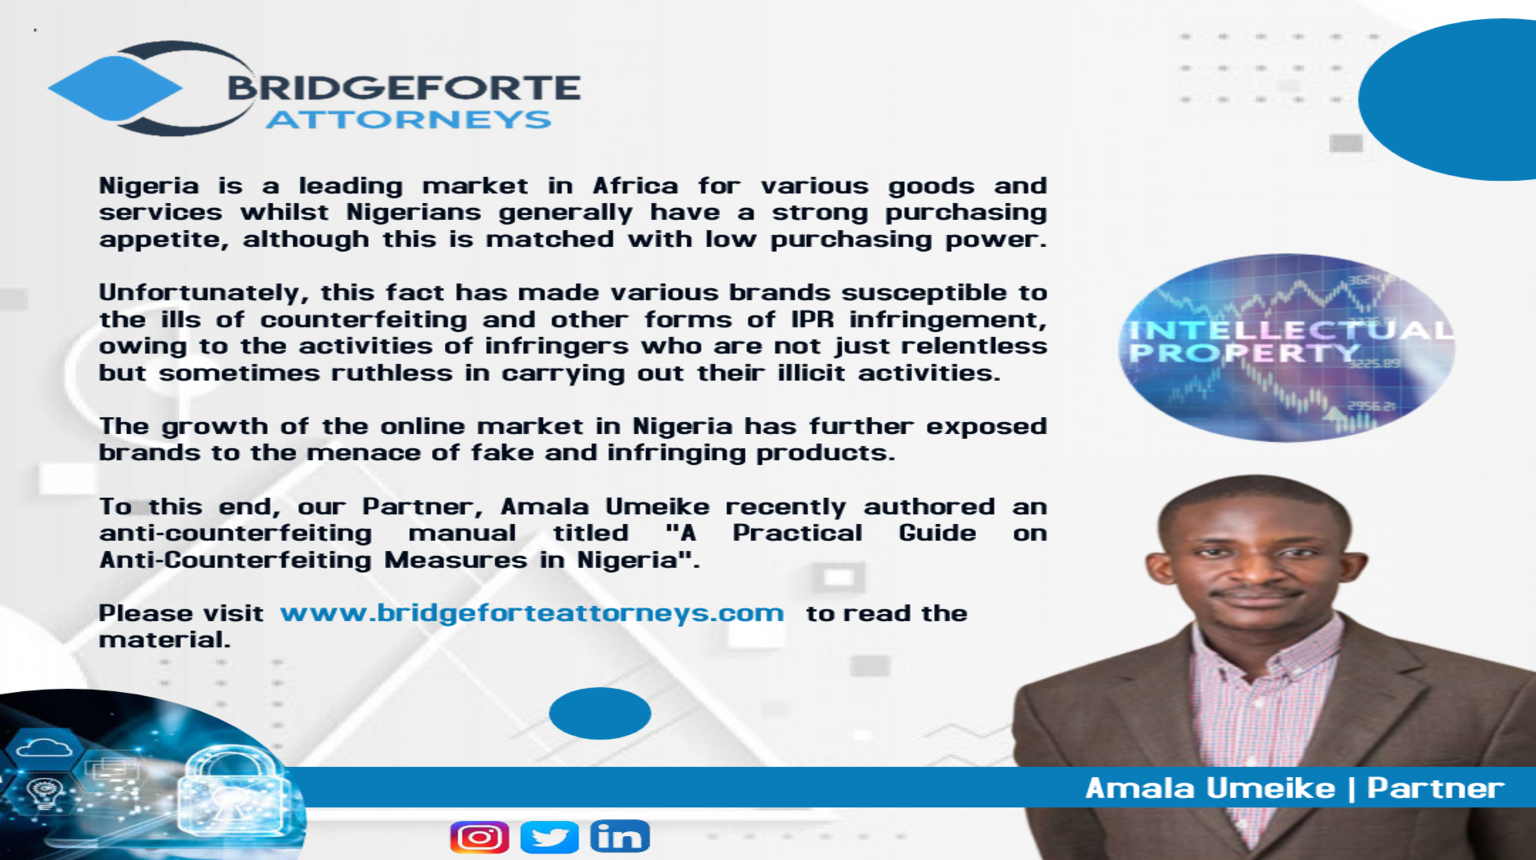 A Practical Guide on Anti-Counterfeiting Measures in Nigeria